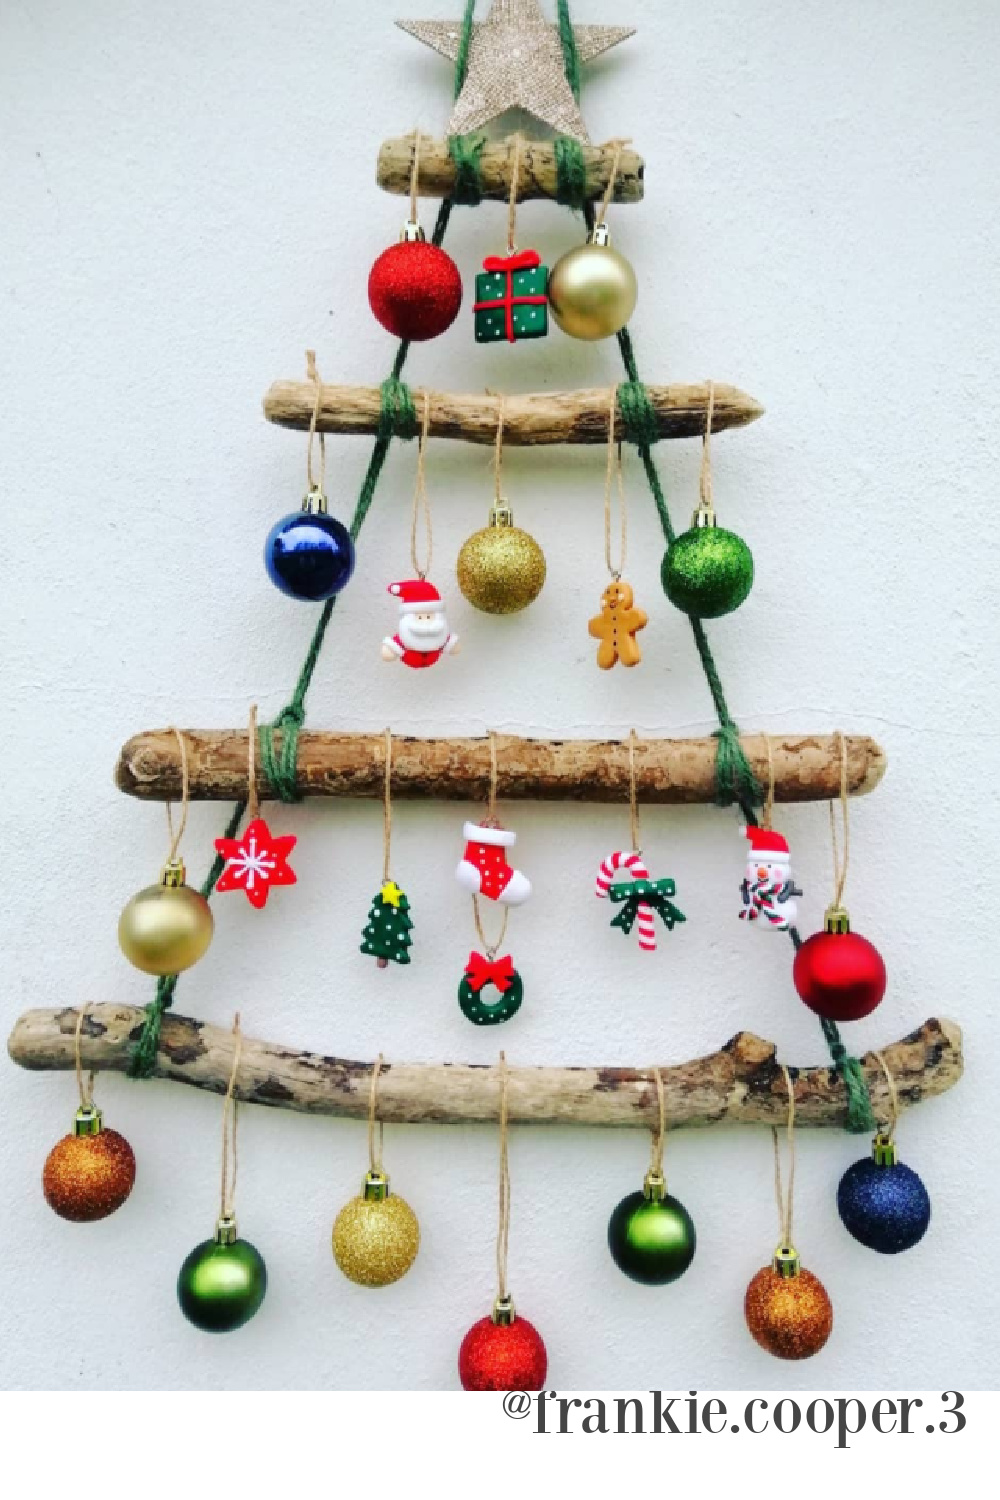 Driftwood Christmas tree with colorful ornaments - @frankie.cooper. #driftwoodtree #christmastrees